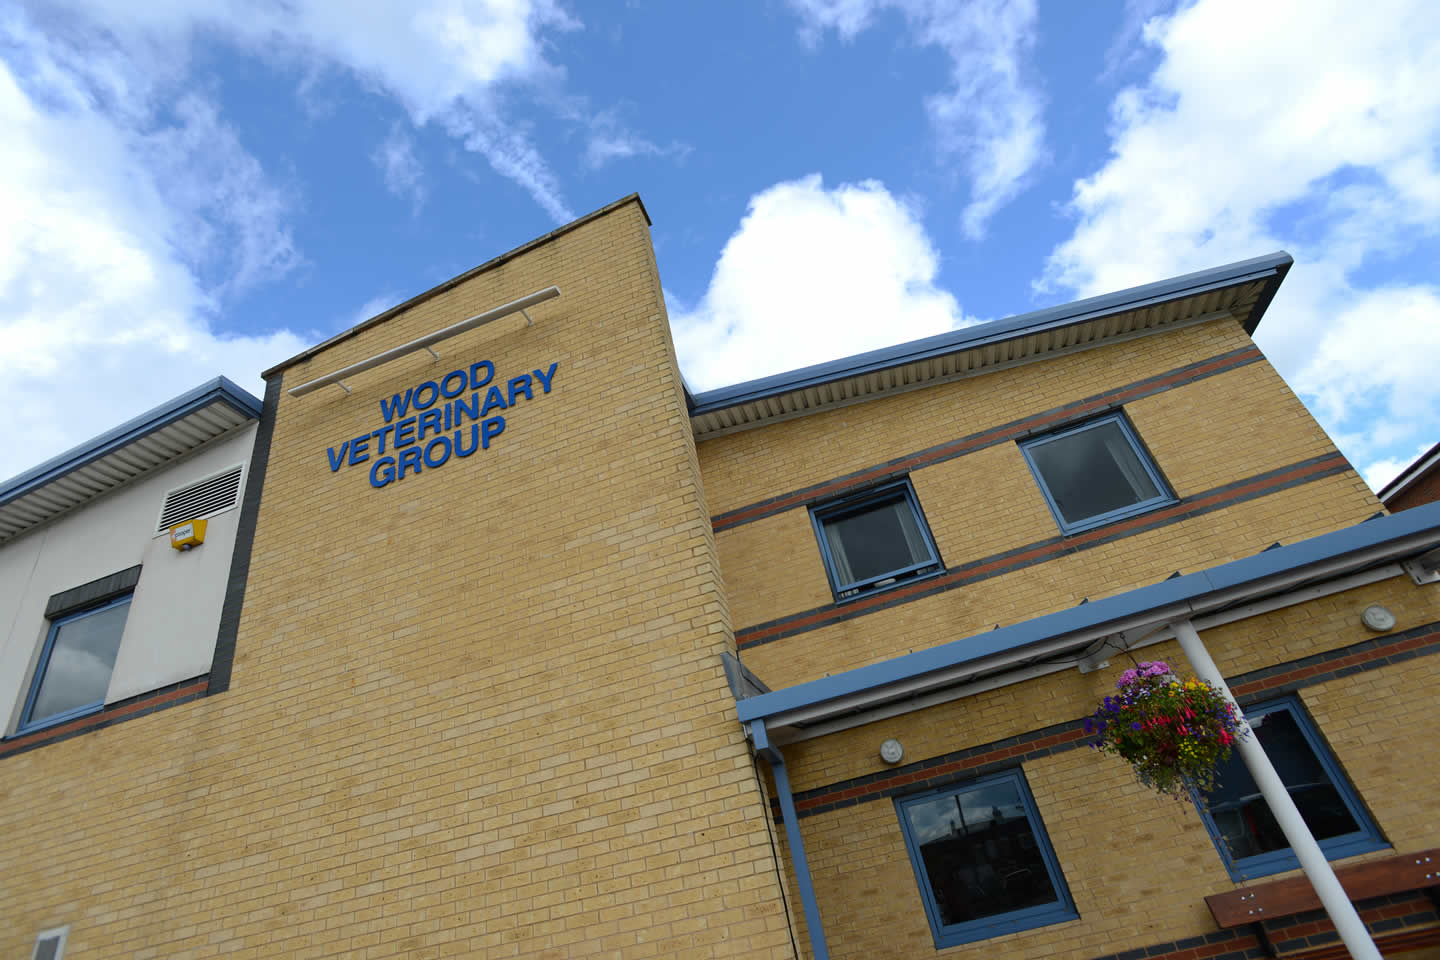 Wood Veterinary Group